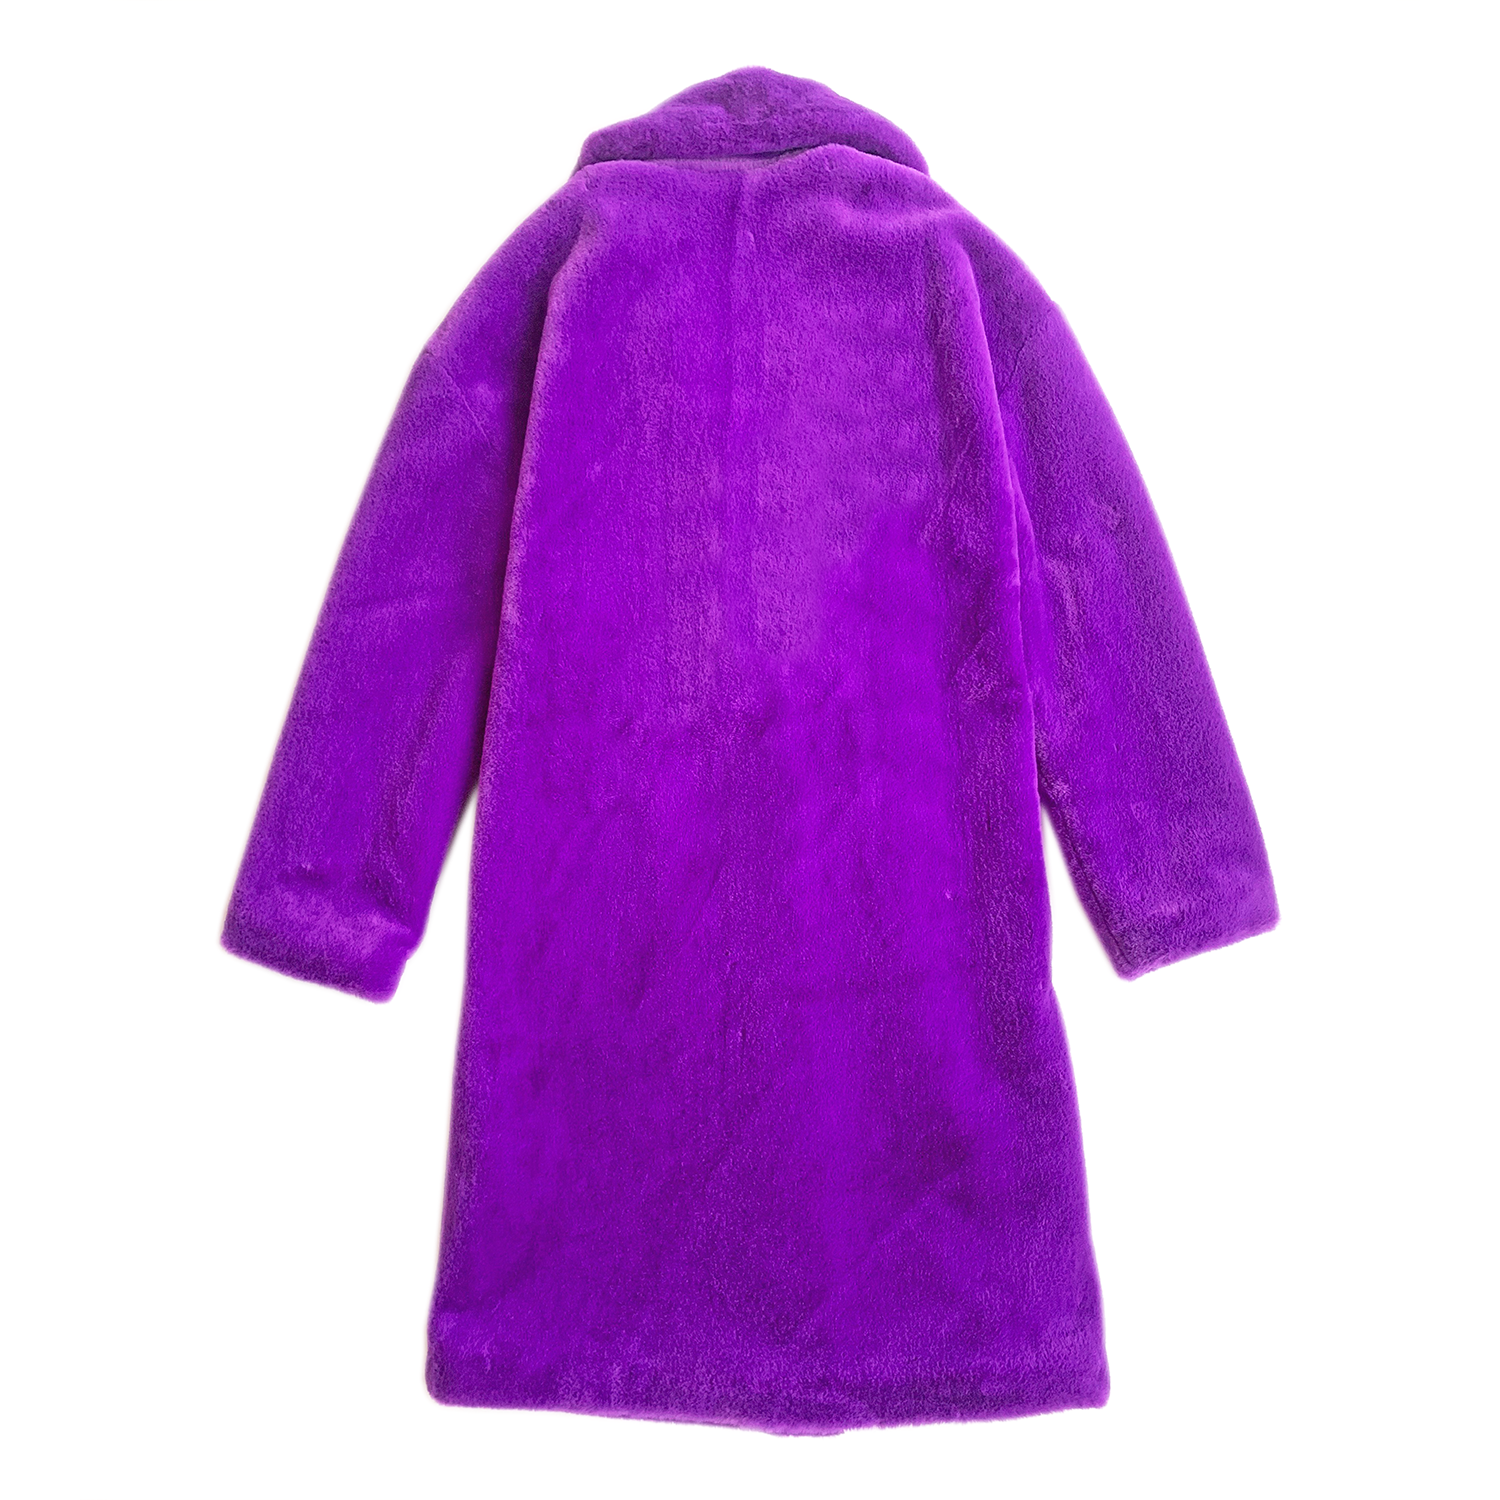 products/violet_bathrobe_back.png